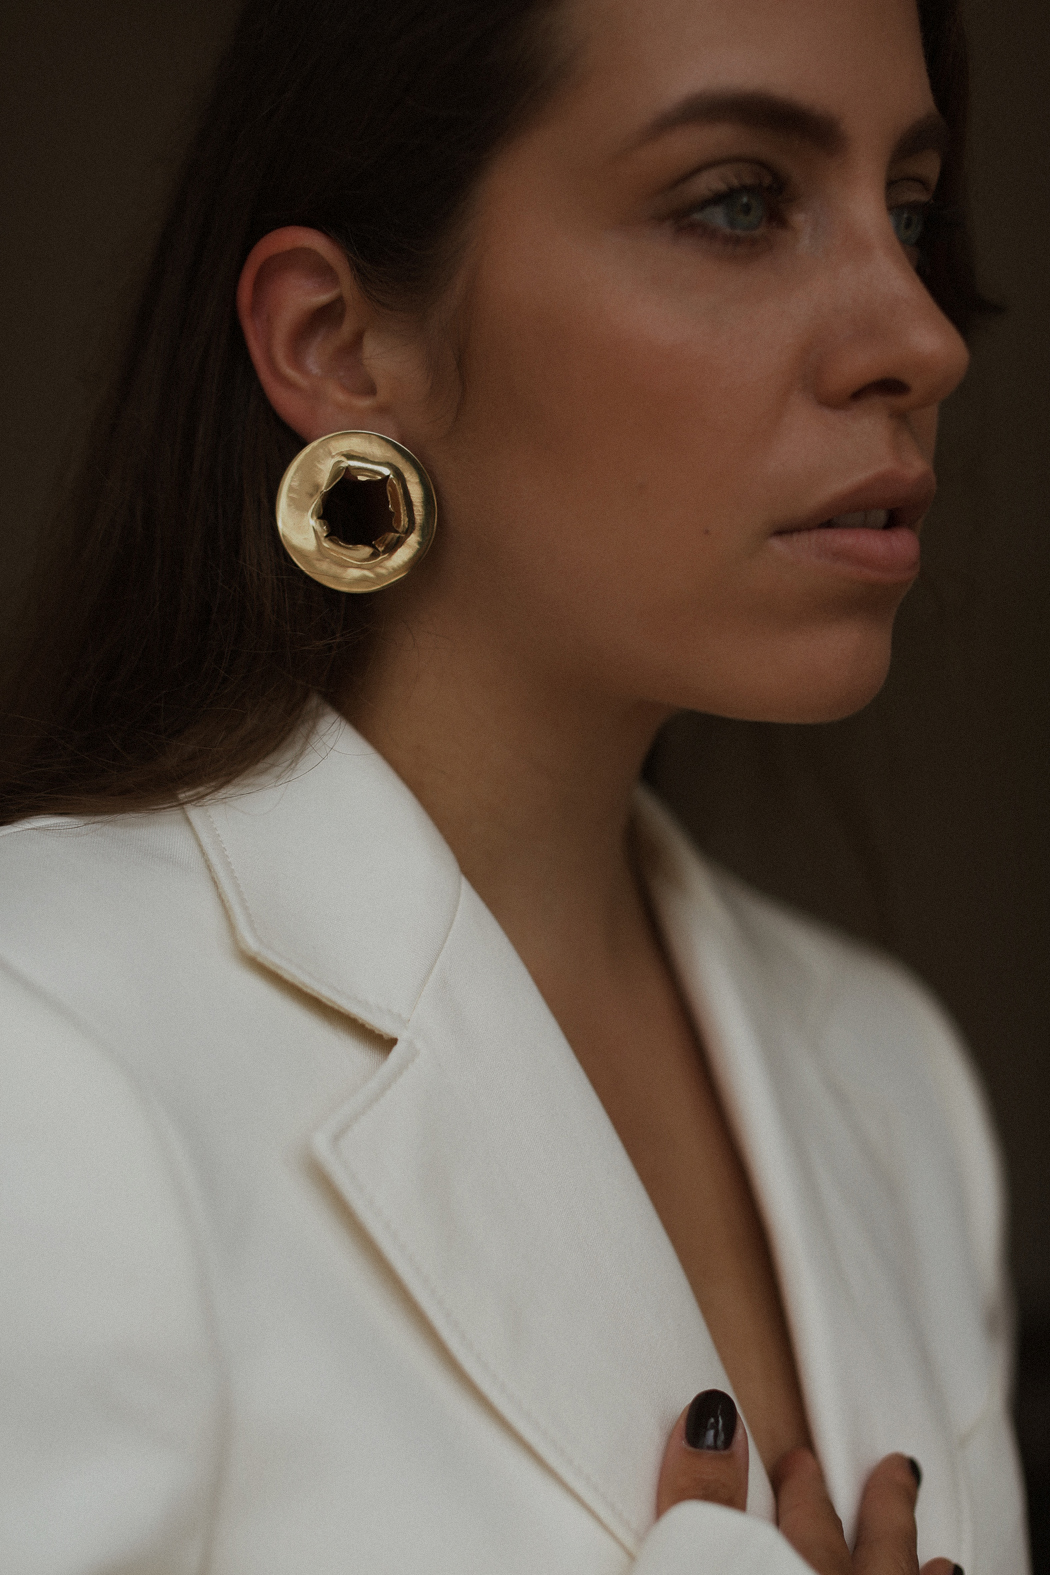 All Blues Bullet Hole Earrings - A series by Fiona Dinkelbach